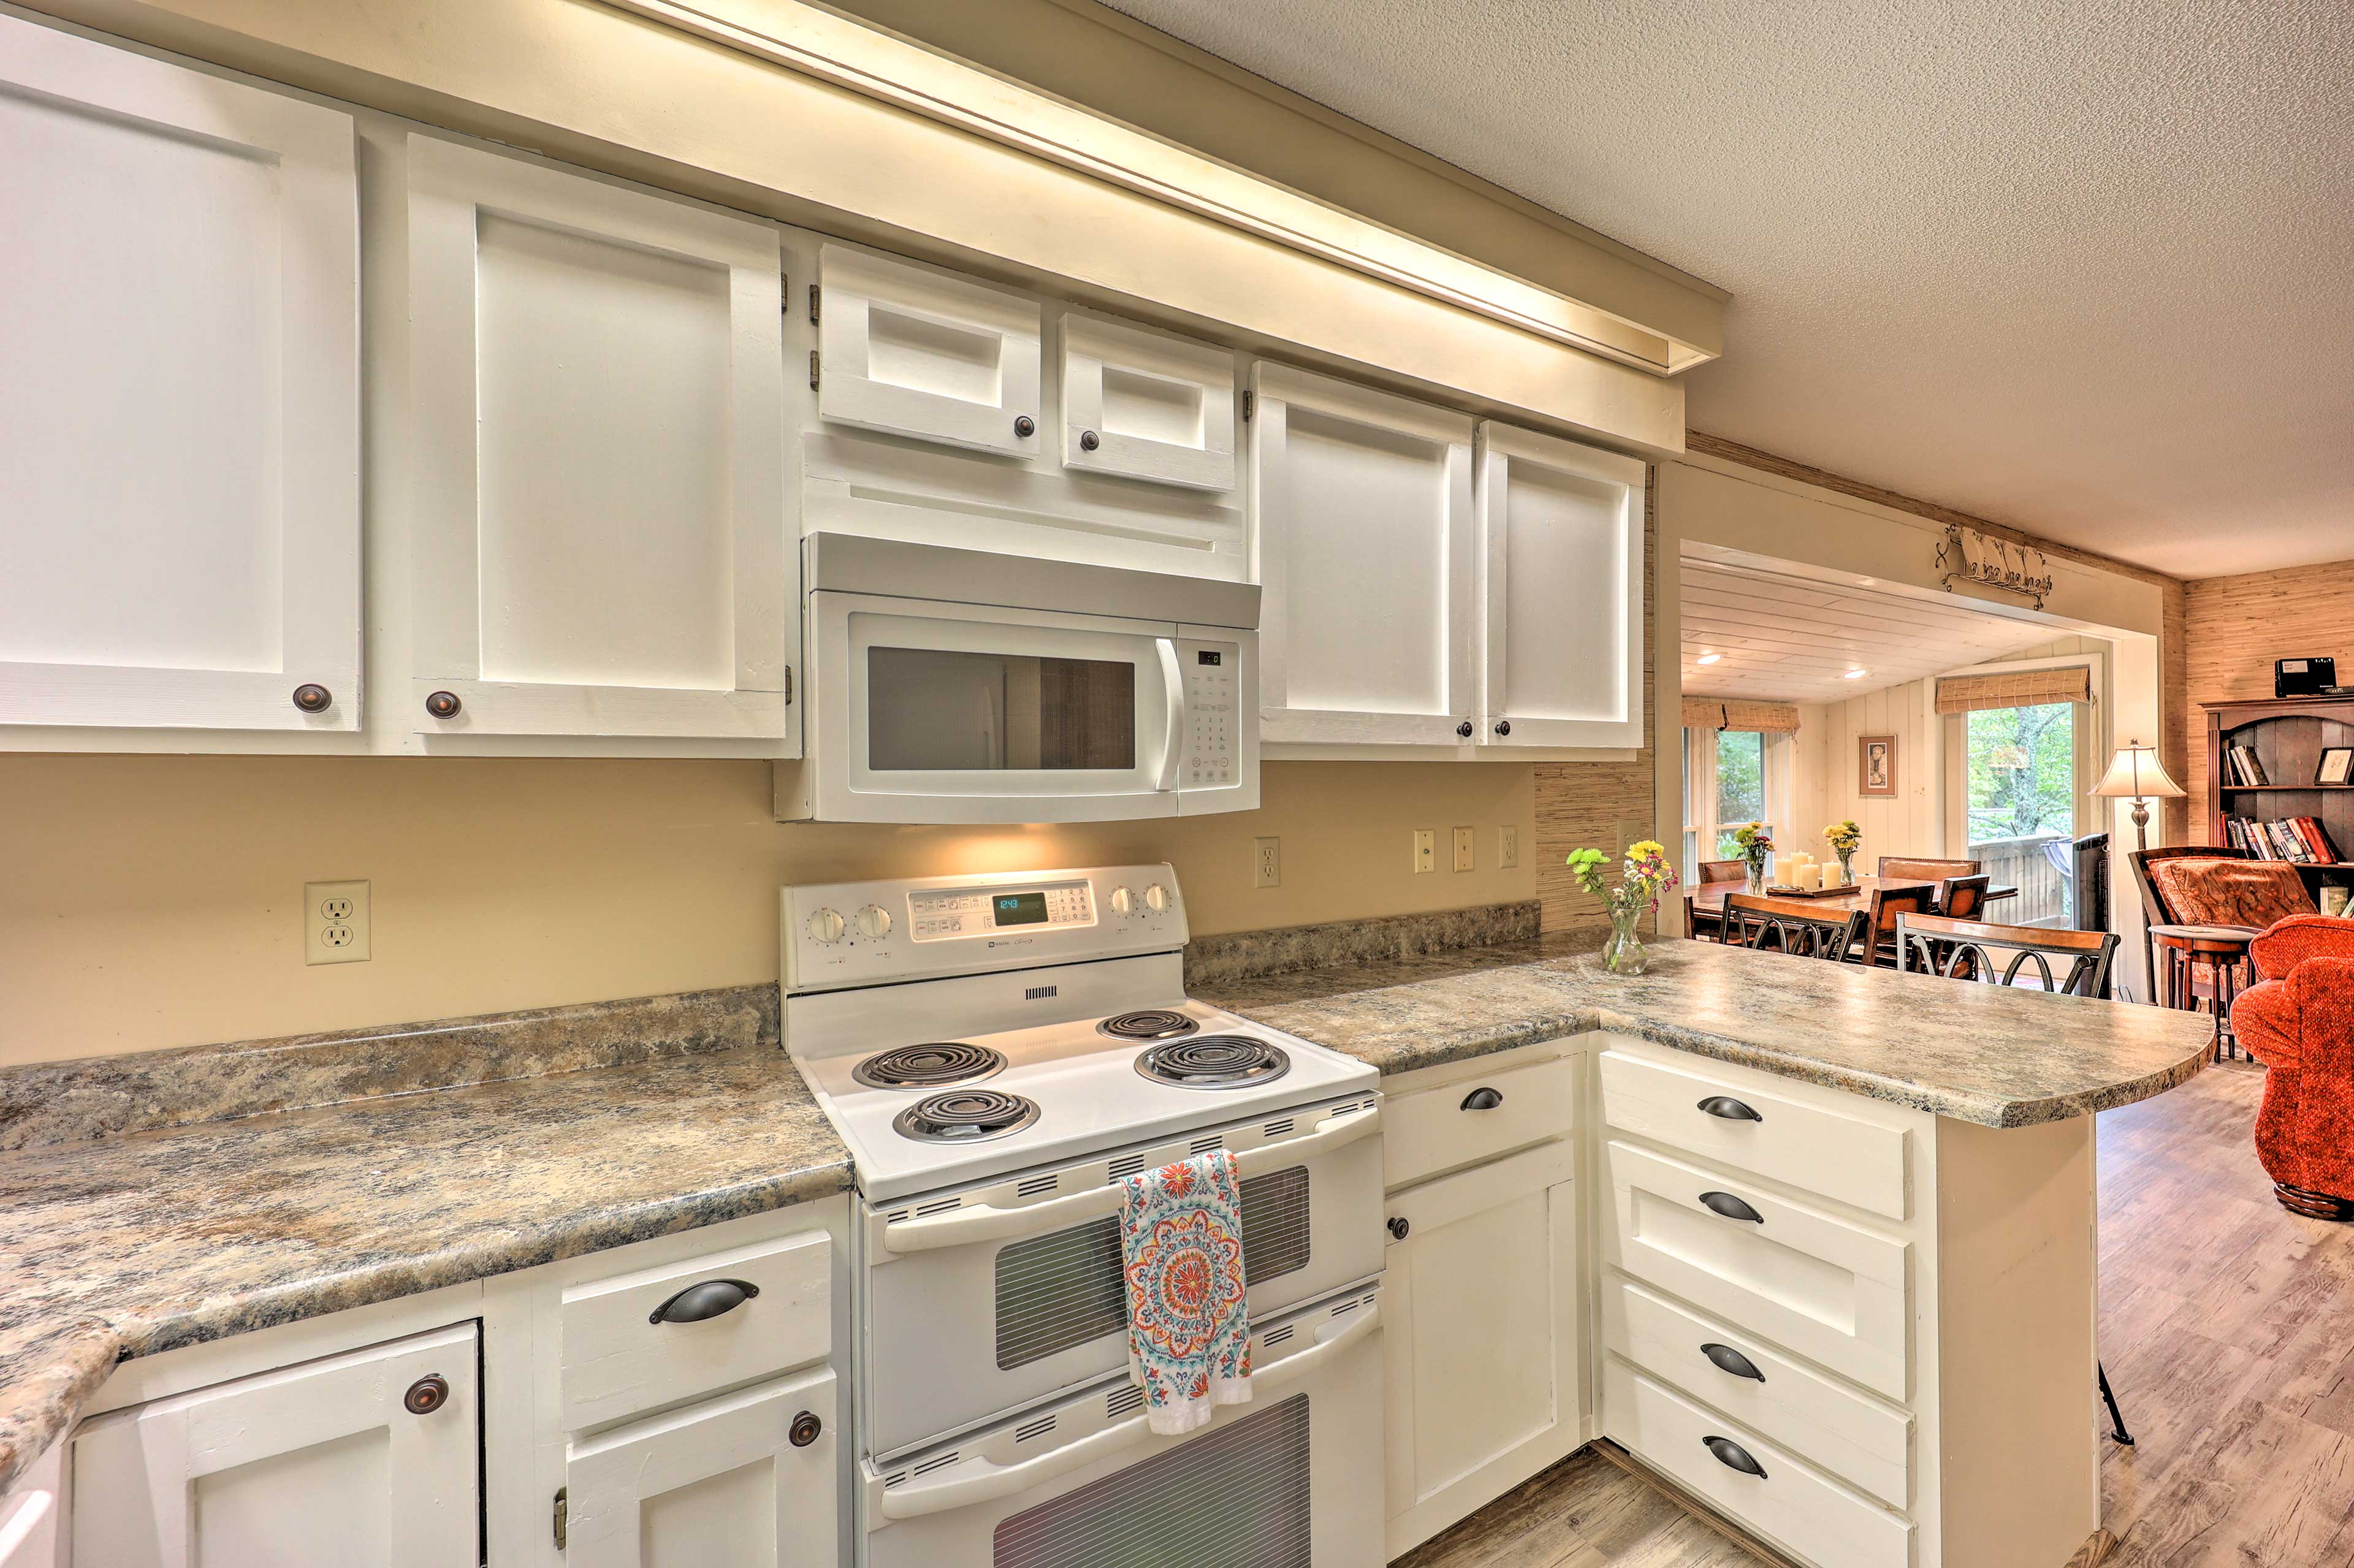 Fully Equipped Kitchen | New Counters